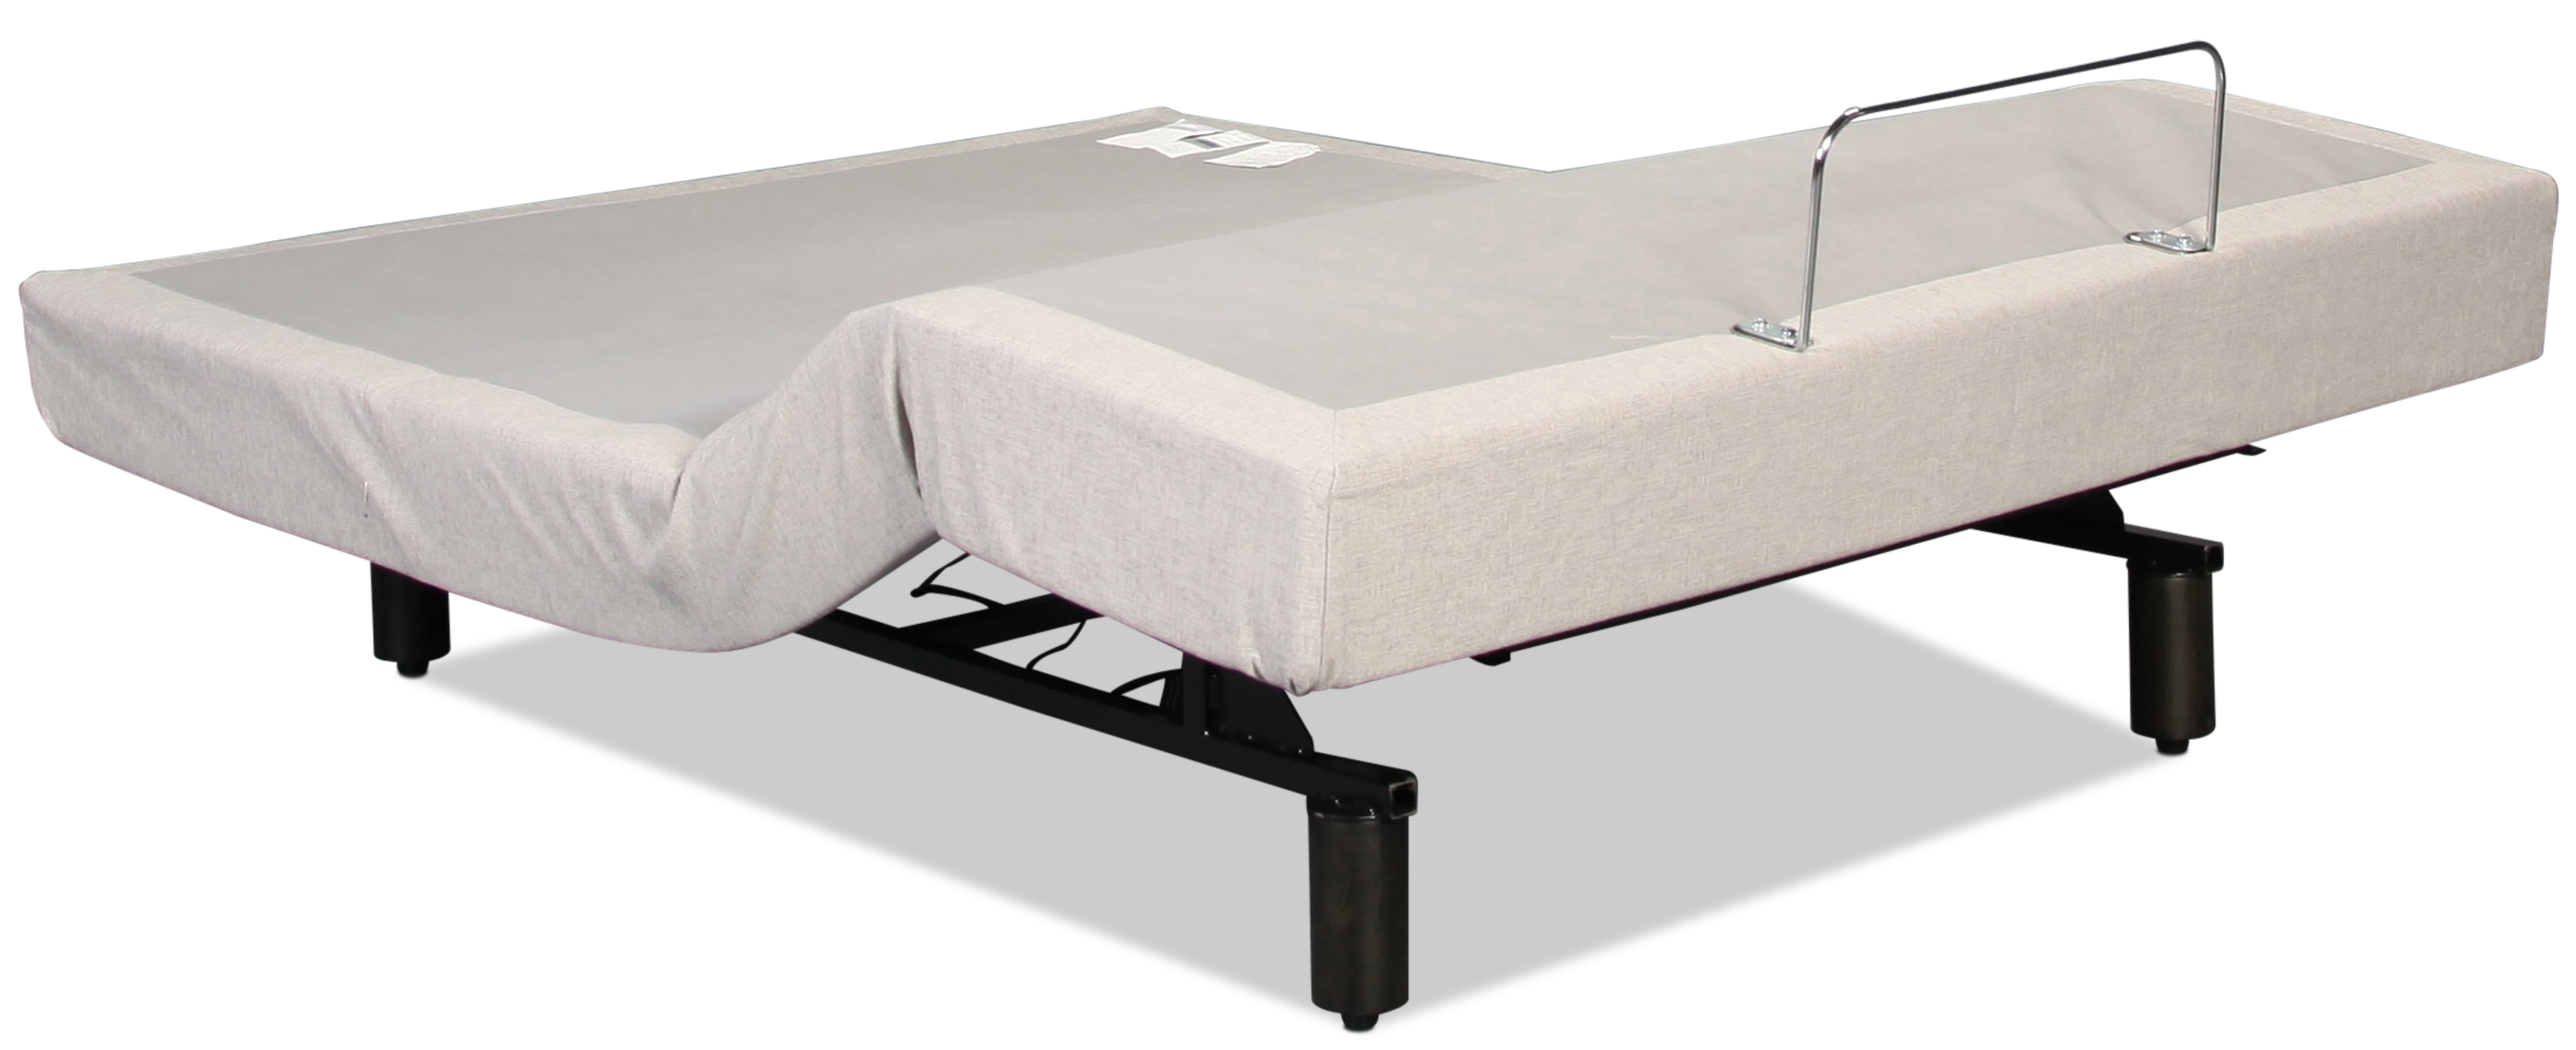 Tempur Pedic Ergo Premier King Adjustable Base Levin Furniture